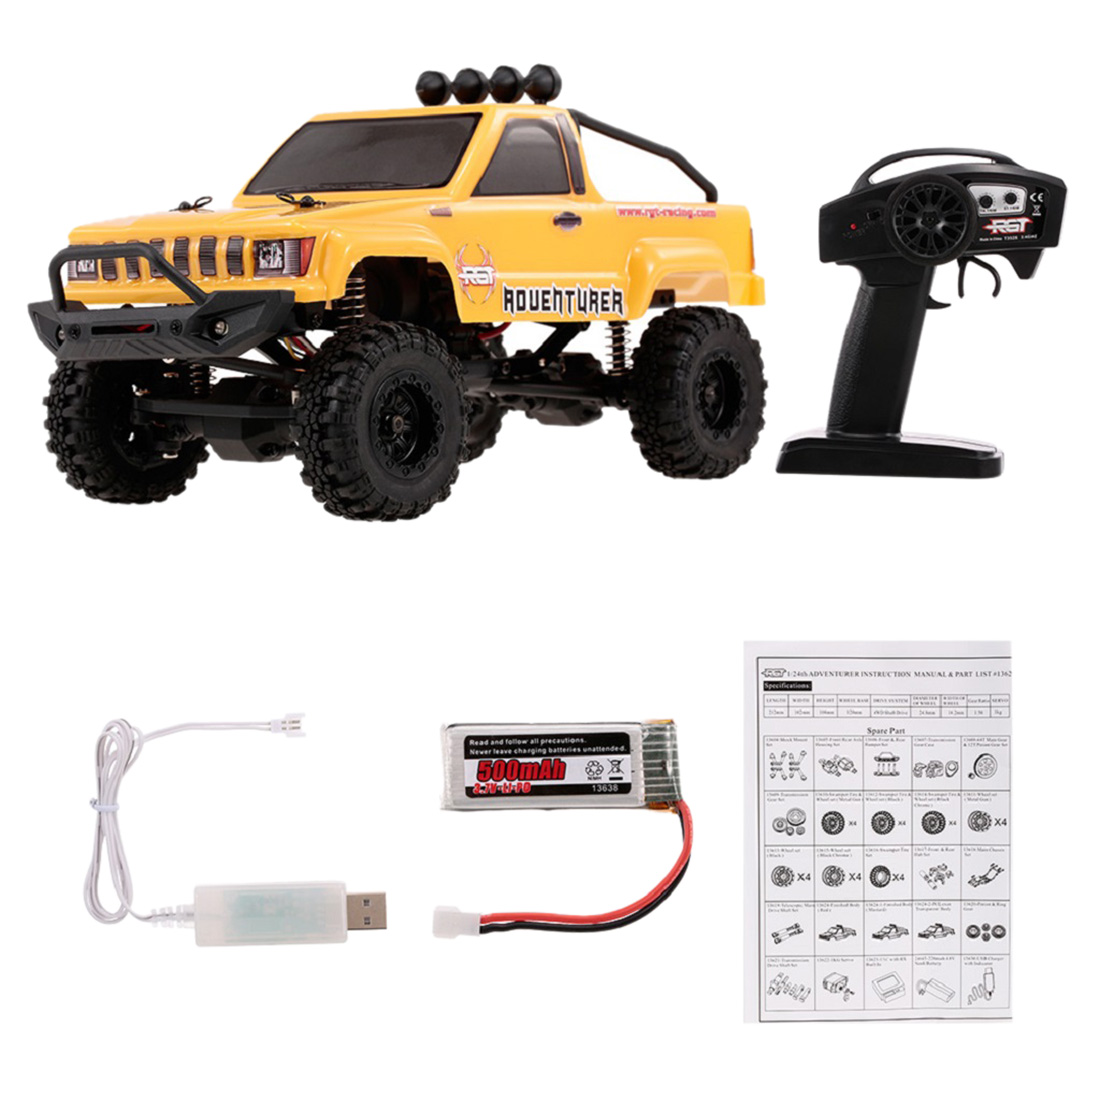 RGT 1:24 2.4G 4WD 15 km/h Simulation RC Off-road Véhicule RC Escalade De Voiture RTR Version-Jaune